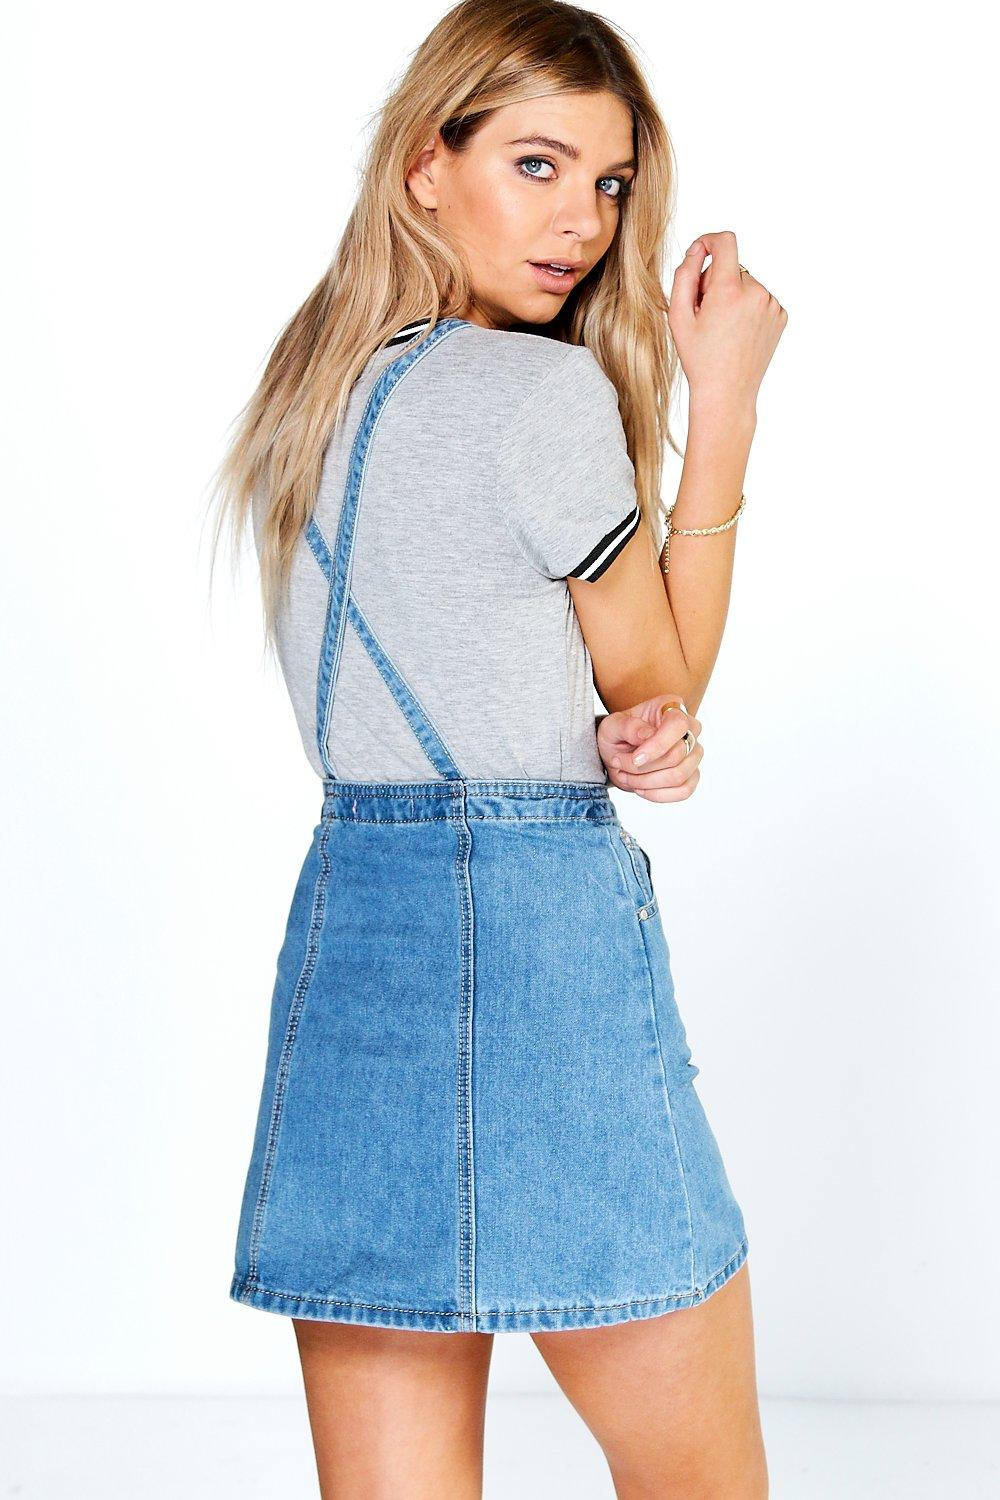 A denim pinafore dress with pockets on front. - Uses quality cotton denim which is breathable and moisture-wicking - Wash and Care: Please follow the washing instructions on the product tags and labels.